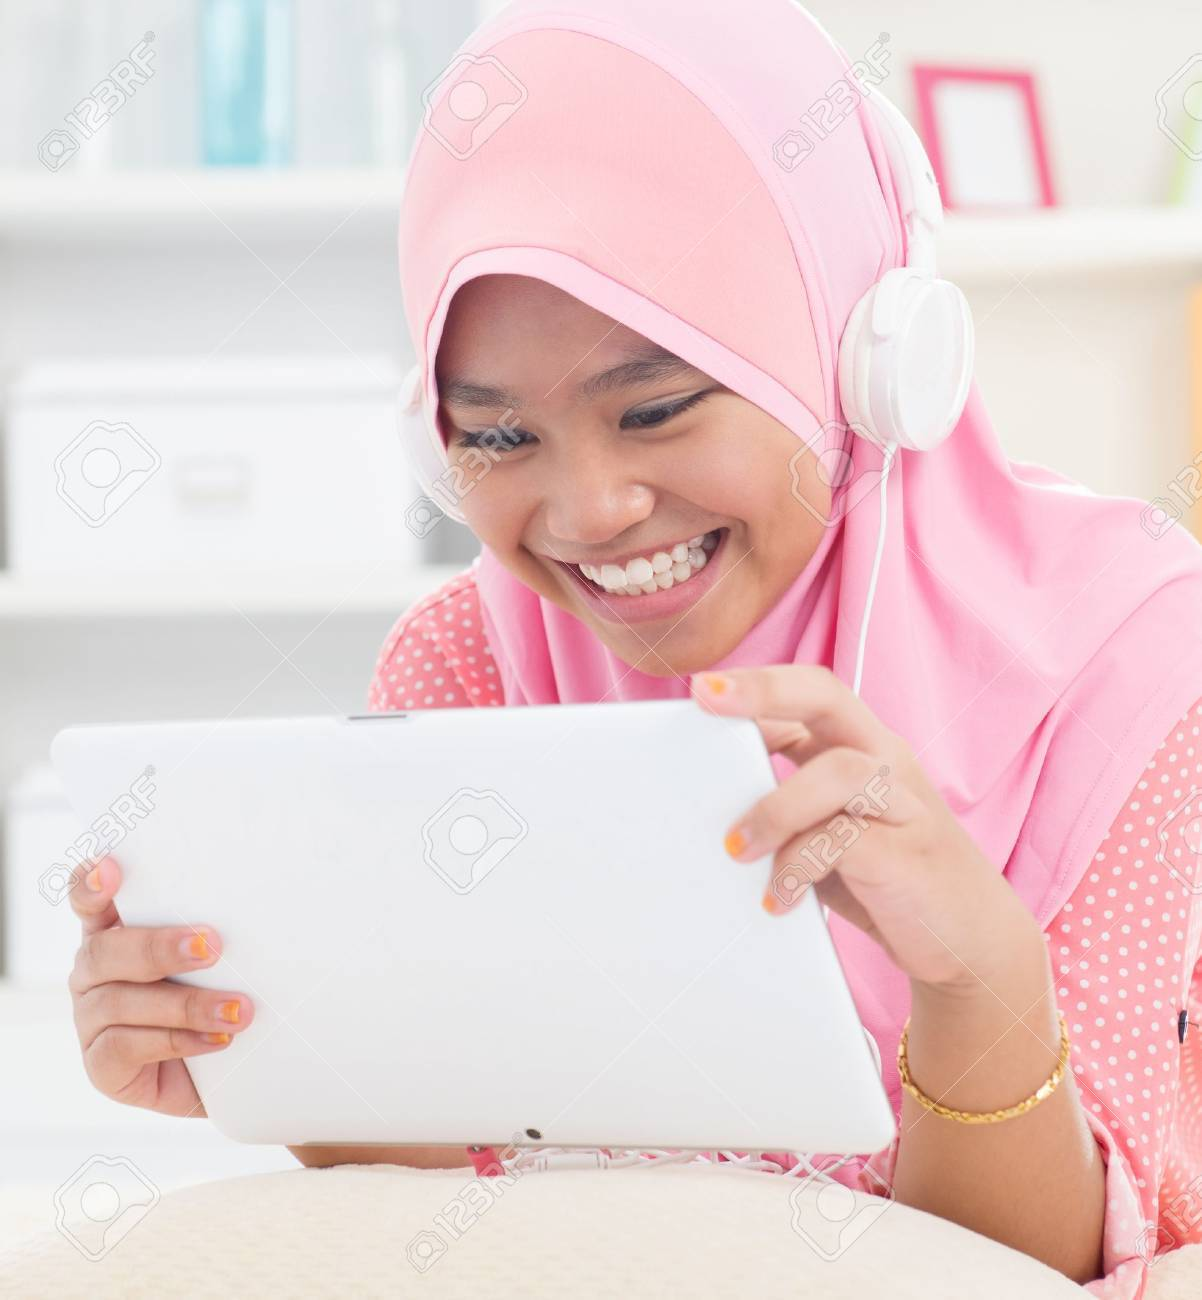 Southeast Asian teenager listen mp3 headphone at home. Muslim teen girl living lifestyle. Stock Photo - 16856834